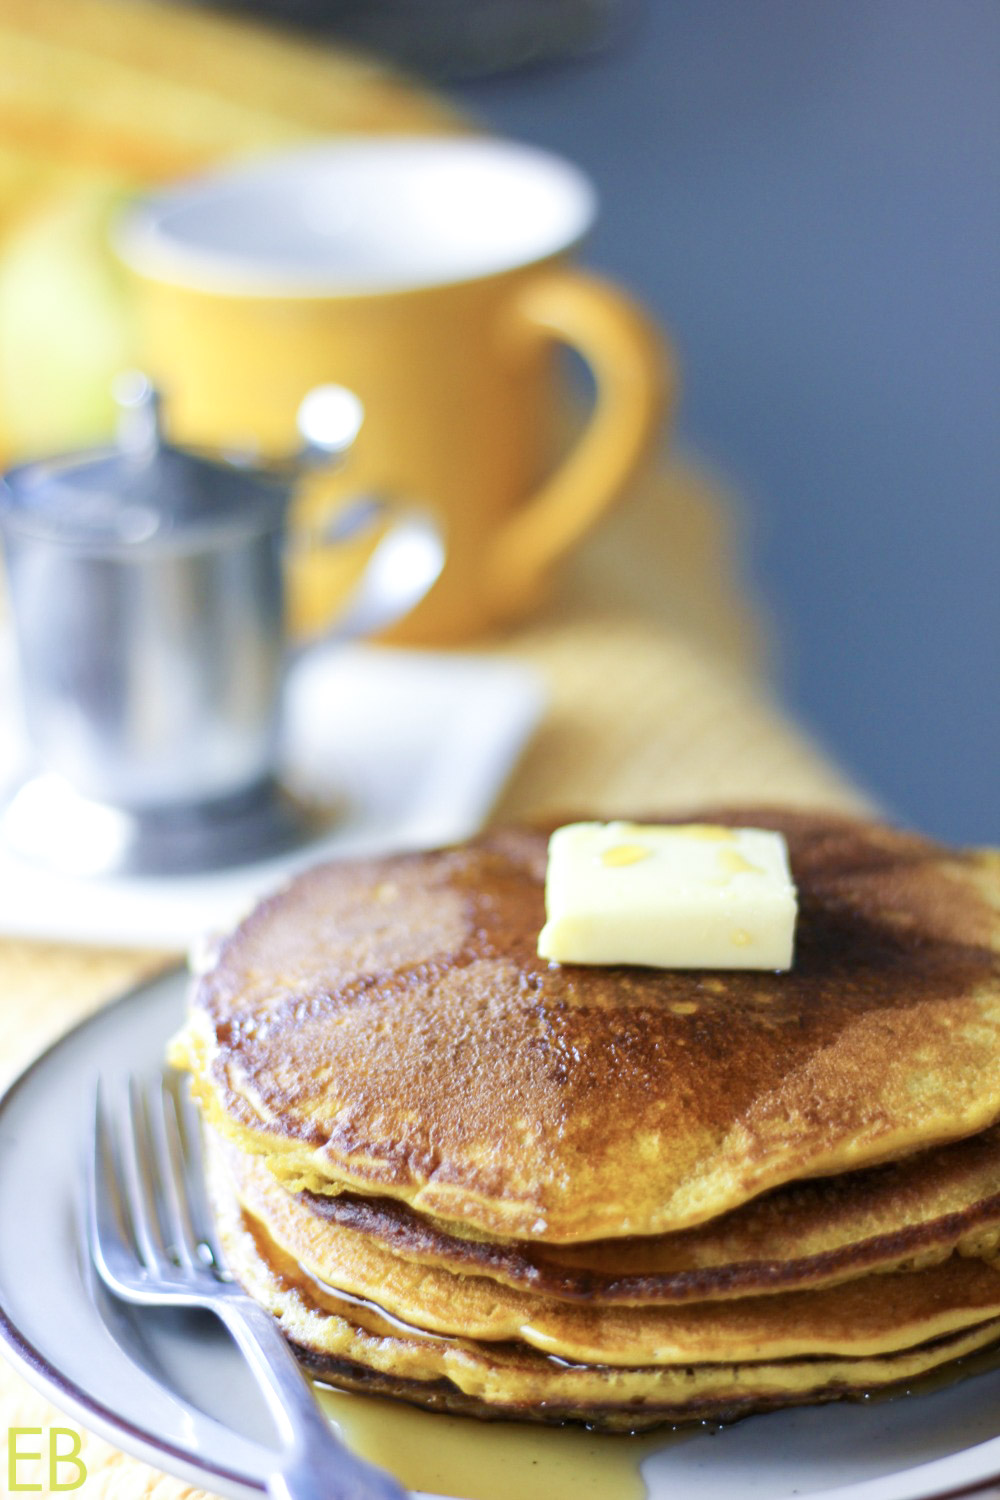 These are perfect pancake recipe you've been looking for! Paleo Pumpkin Pancakes are healthy with great protein, nourishing fat and complex carbs — great energy for all day, plus SOOO yummy! #paleo #pancakes #grainfree #pumpkin #ottoscassavaflour #cassava #glutenfree #breakfast